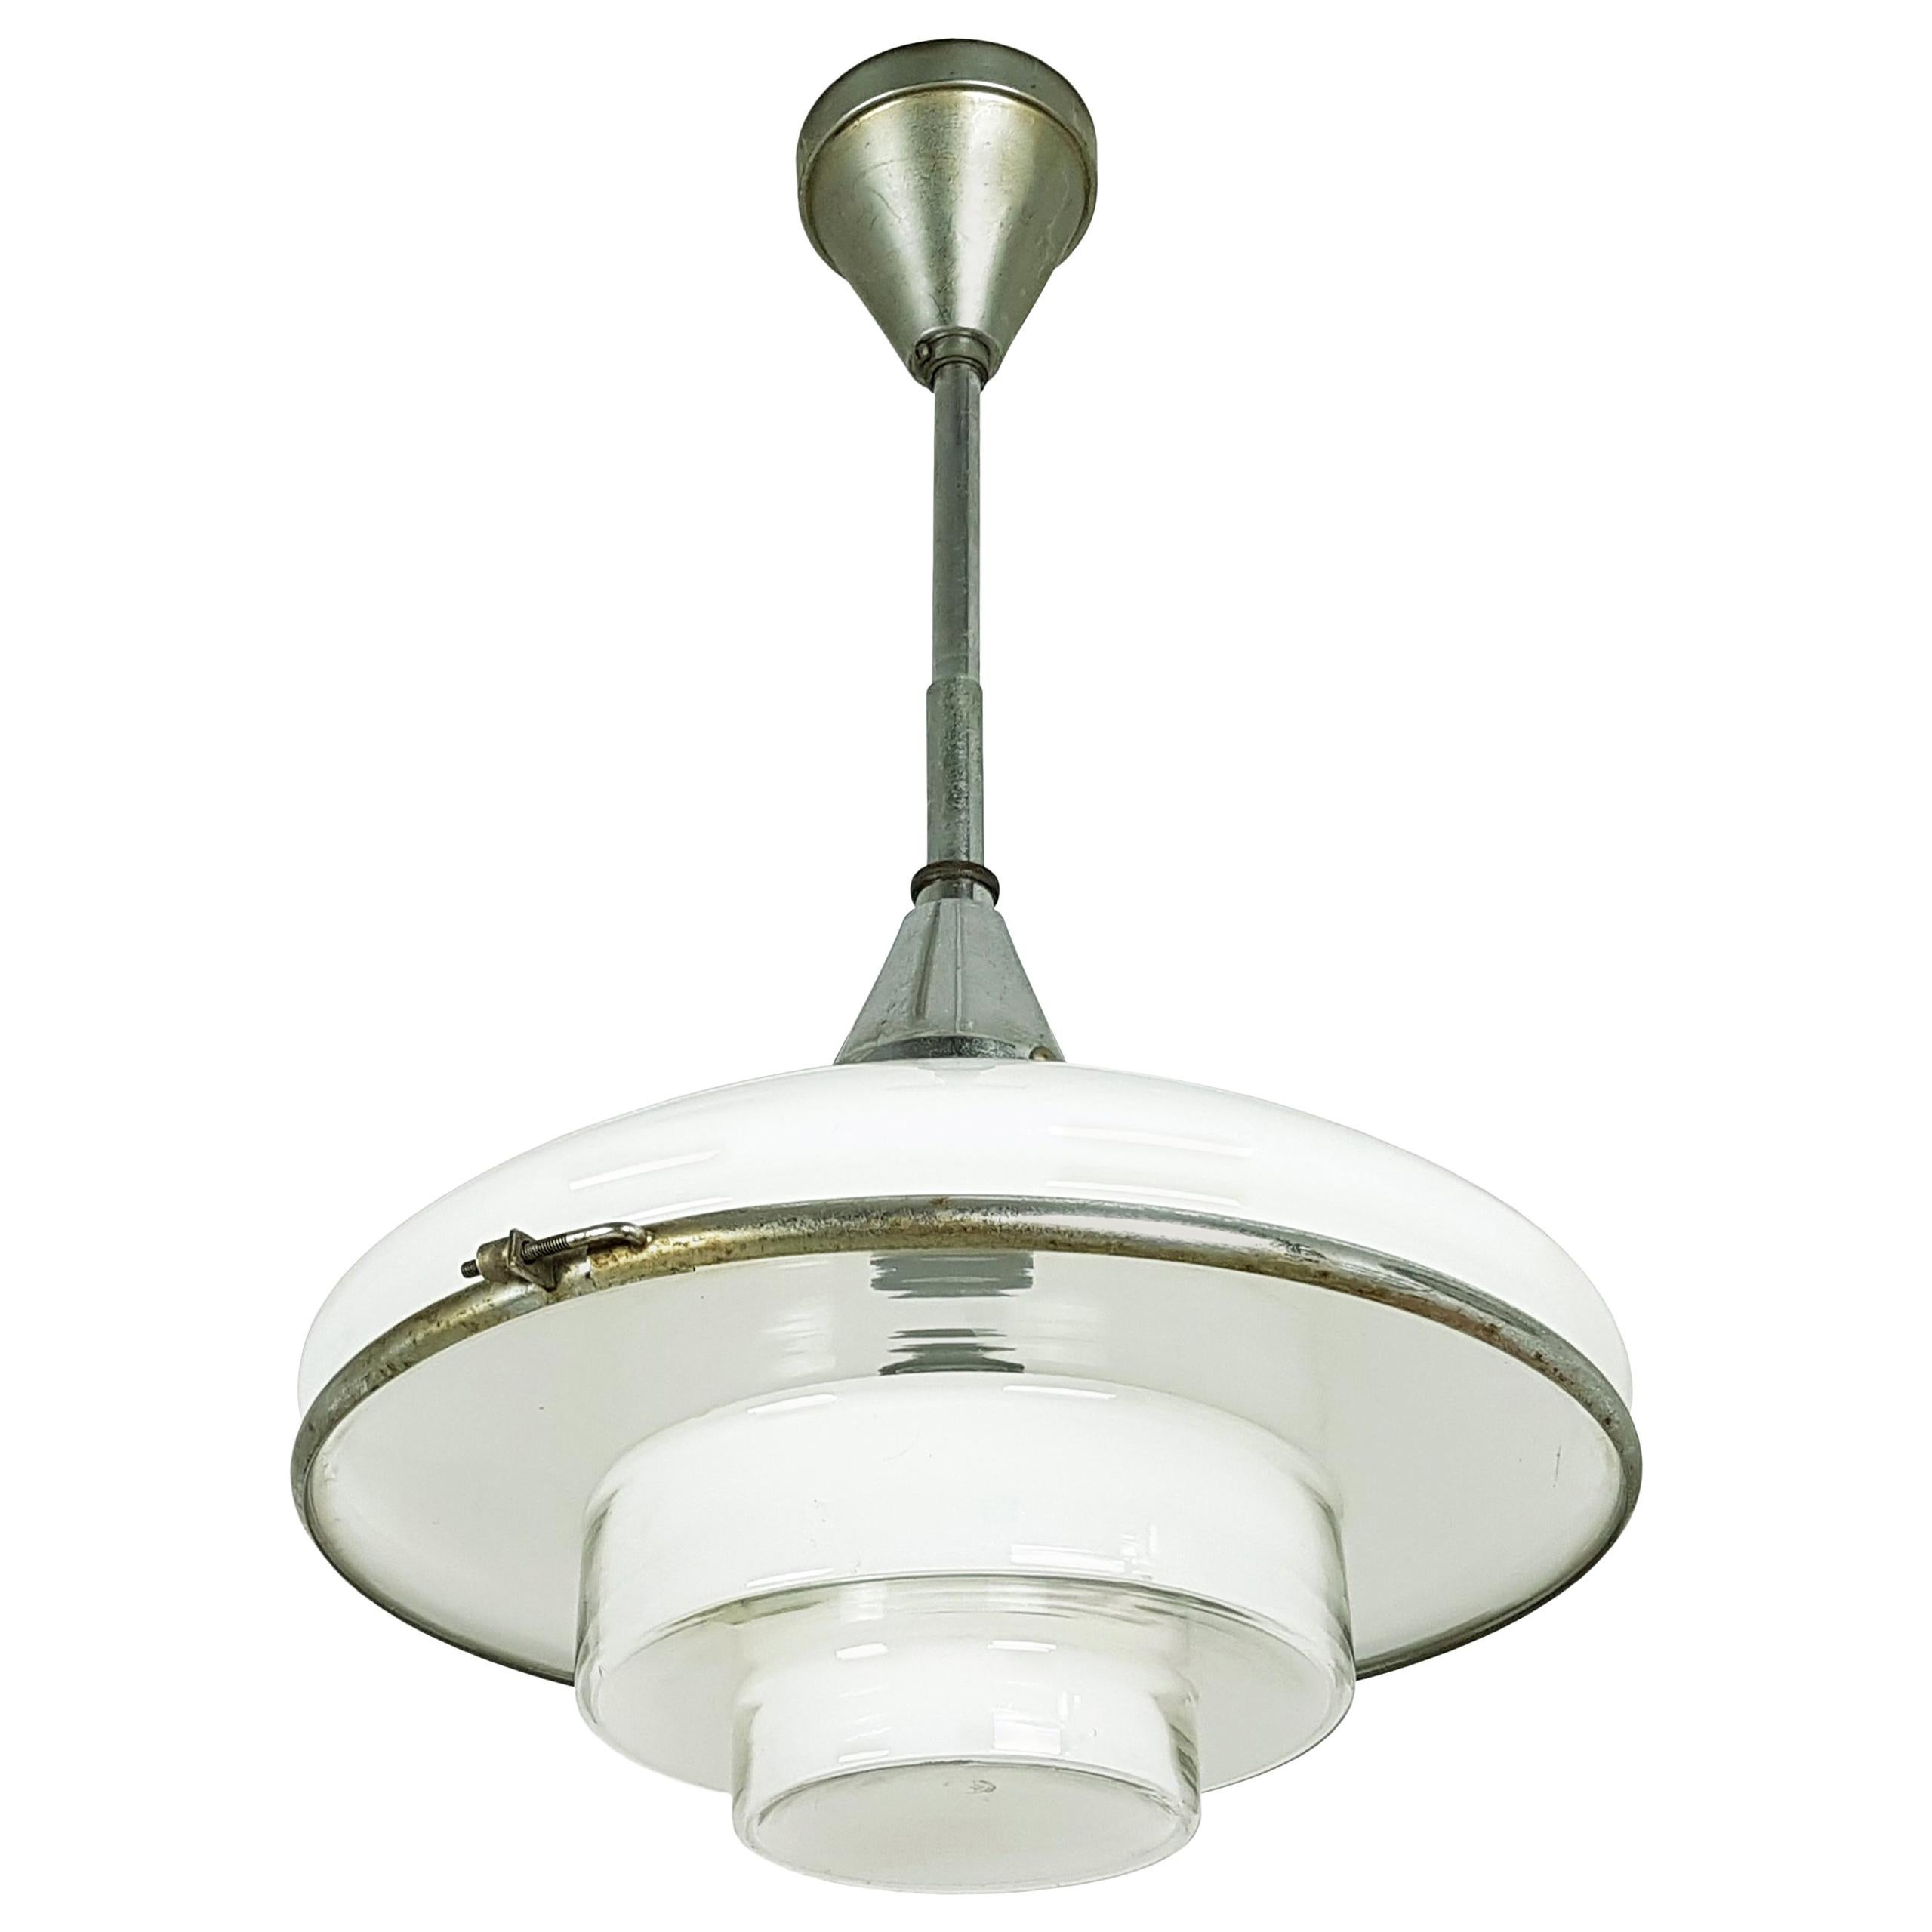 Small Chrome-Plated and Opaline Glass 1930s Pendant Lamp by Otto Müller for Sist